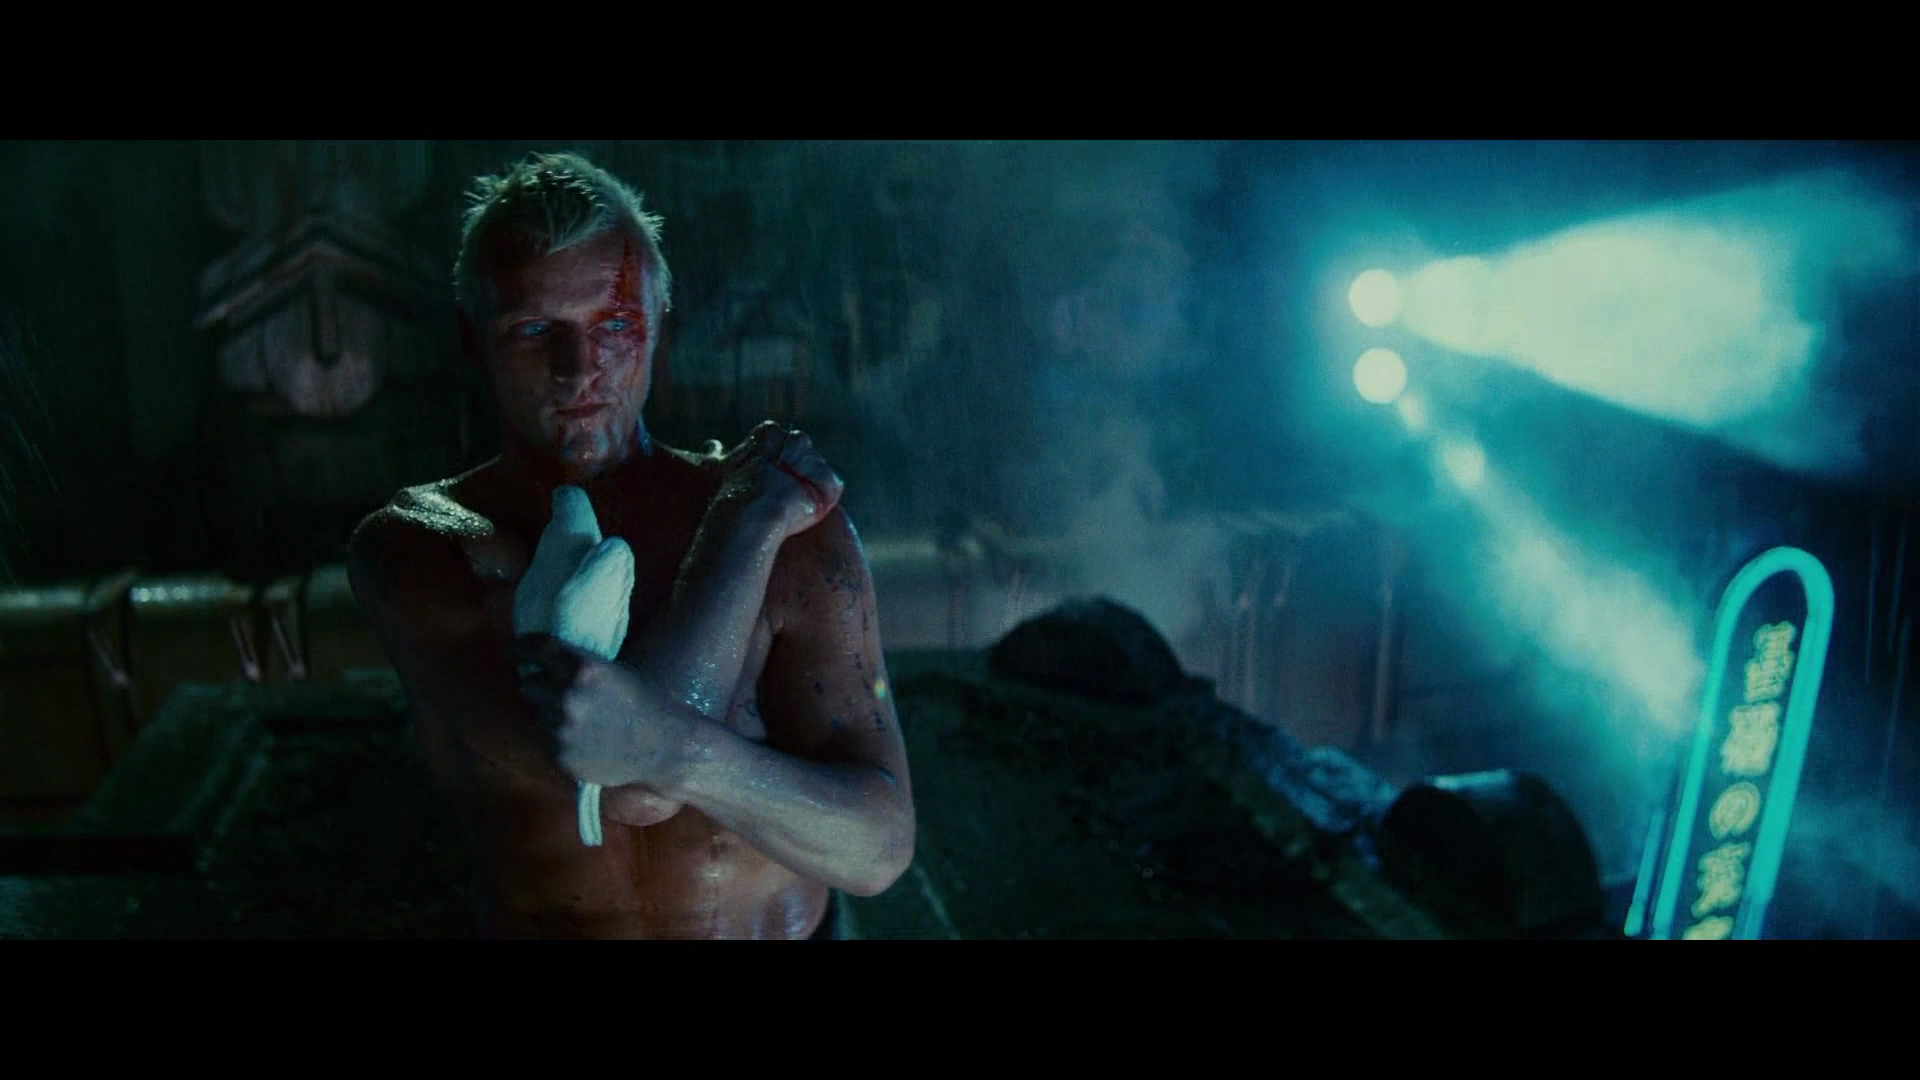 monstrosity in blade runner Technology and frankenstein and monstrosity oh, my on the other side of the coin, we see films such as blade runner where replicants that look.